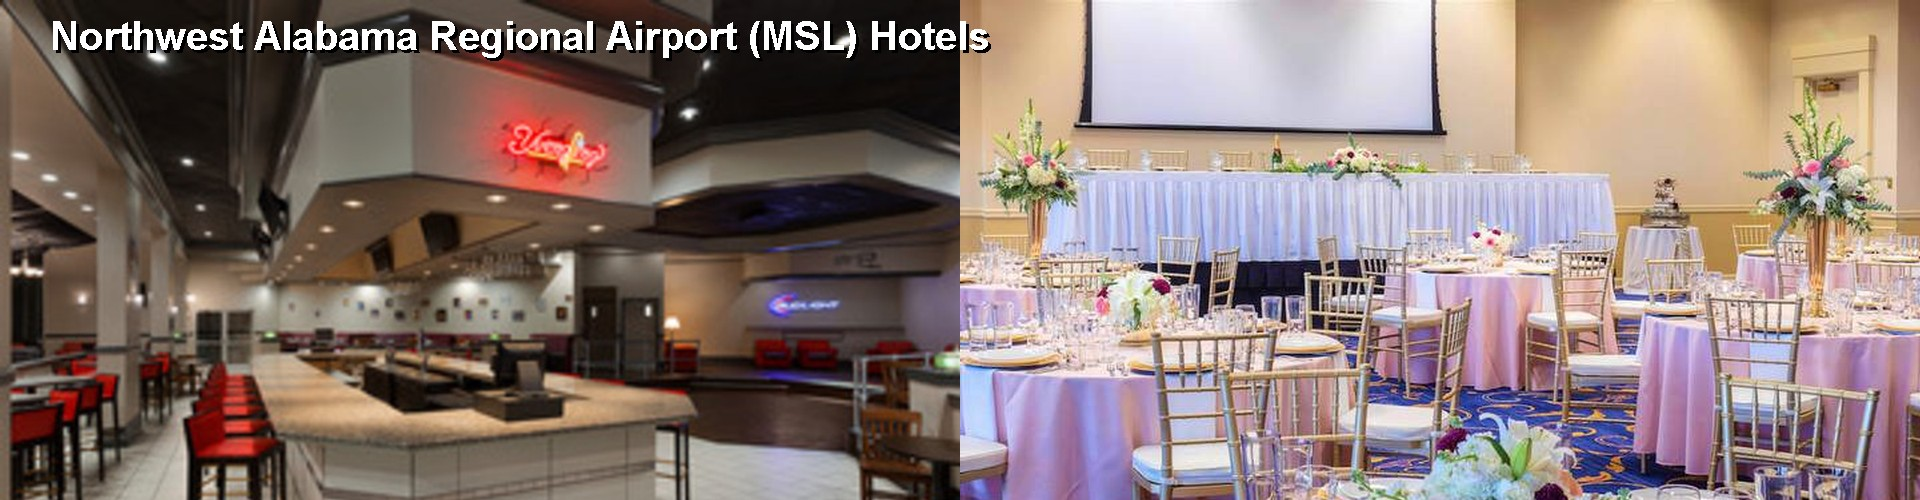 5 Best Hotels near Northwest Alabama Regional Airport (MSL)